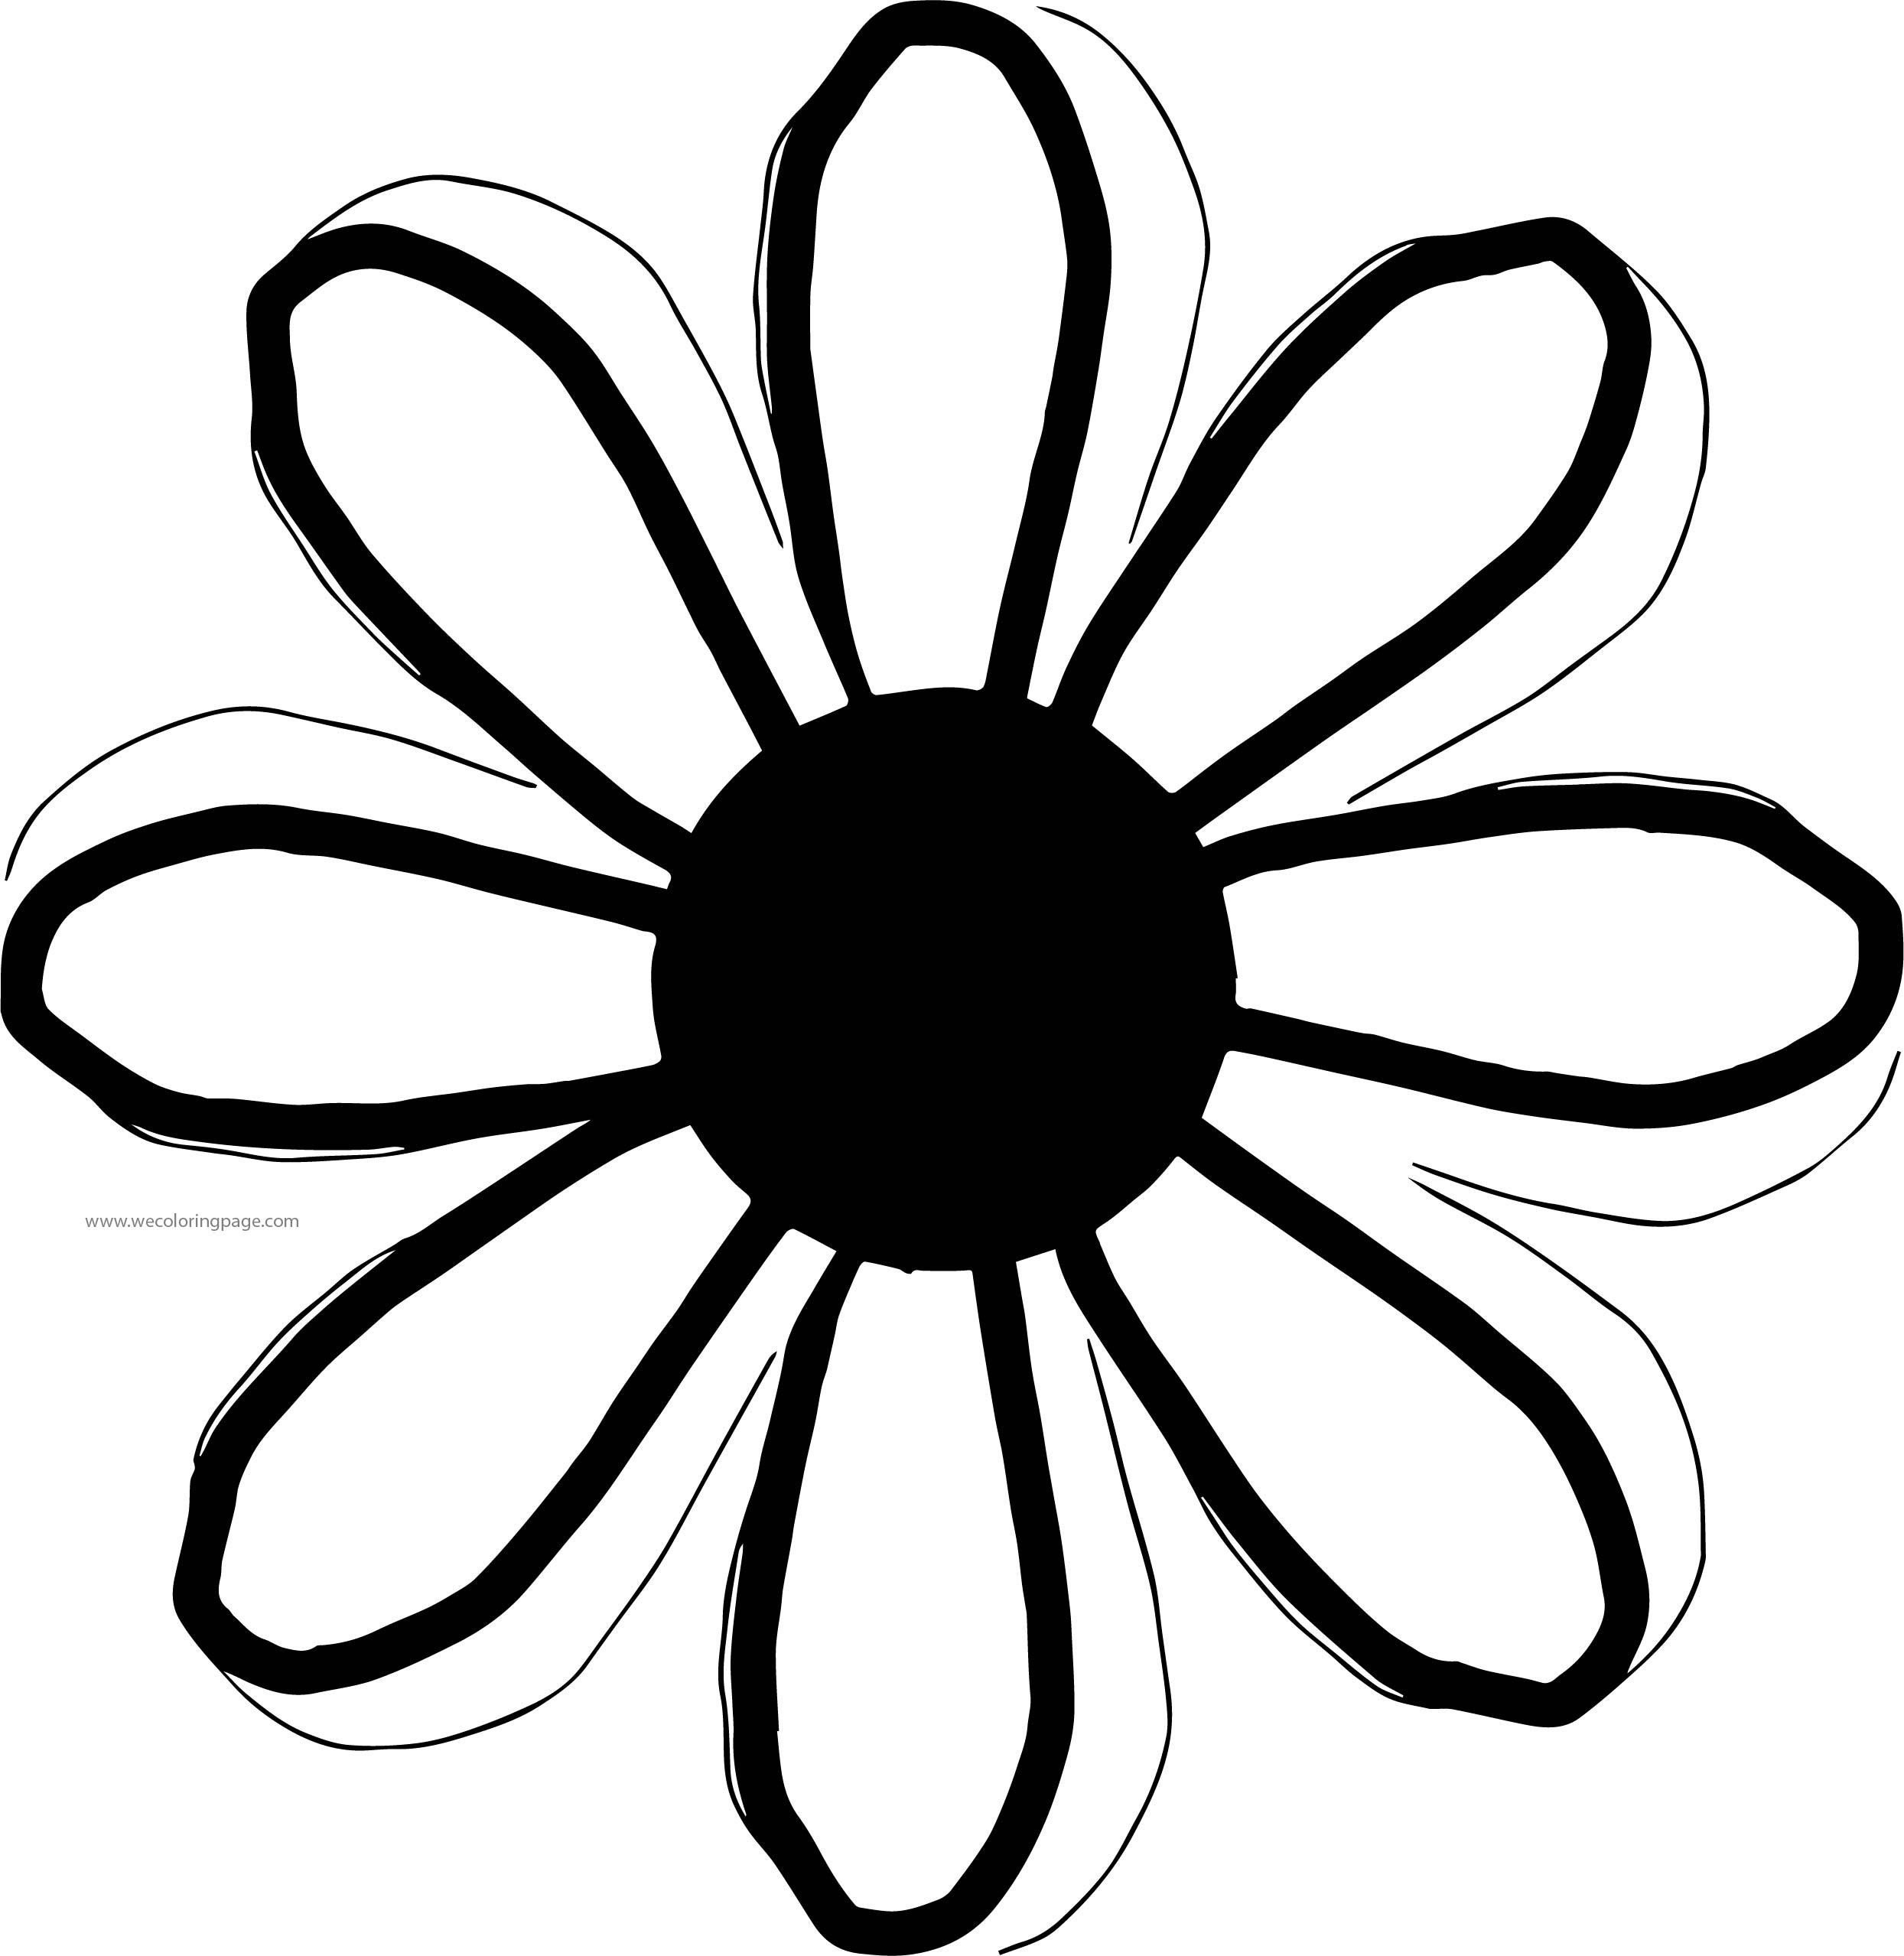 bold line coloring pages | Flower Bold Slim Line Coloring Page | Wecoloringpage.com